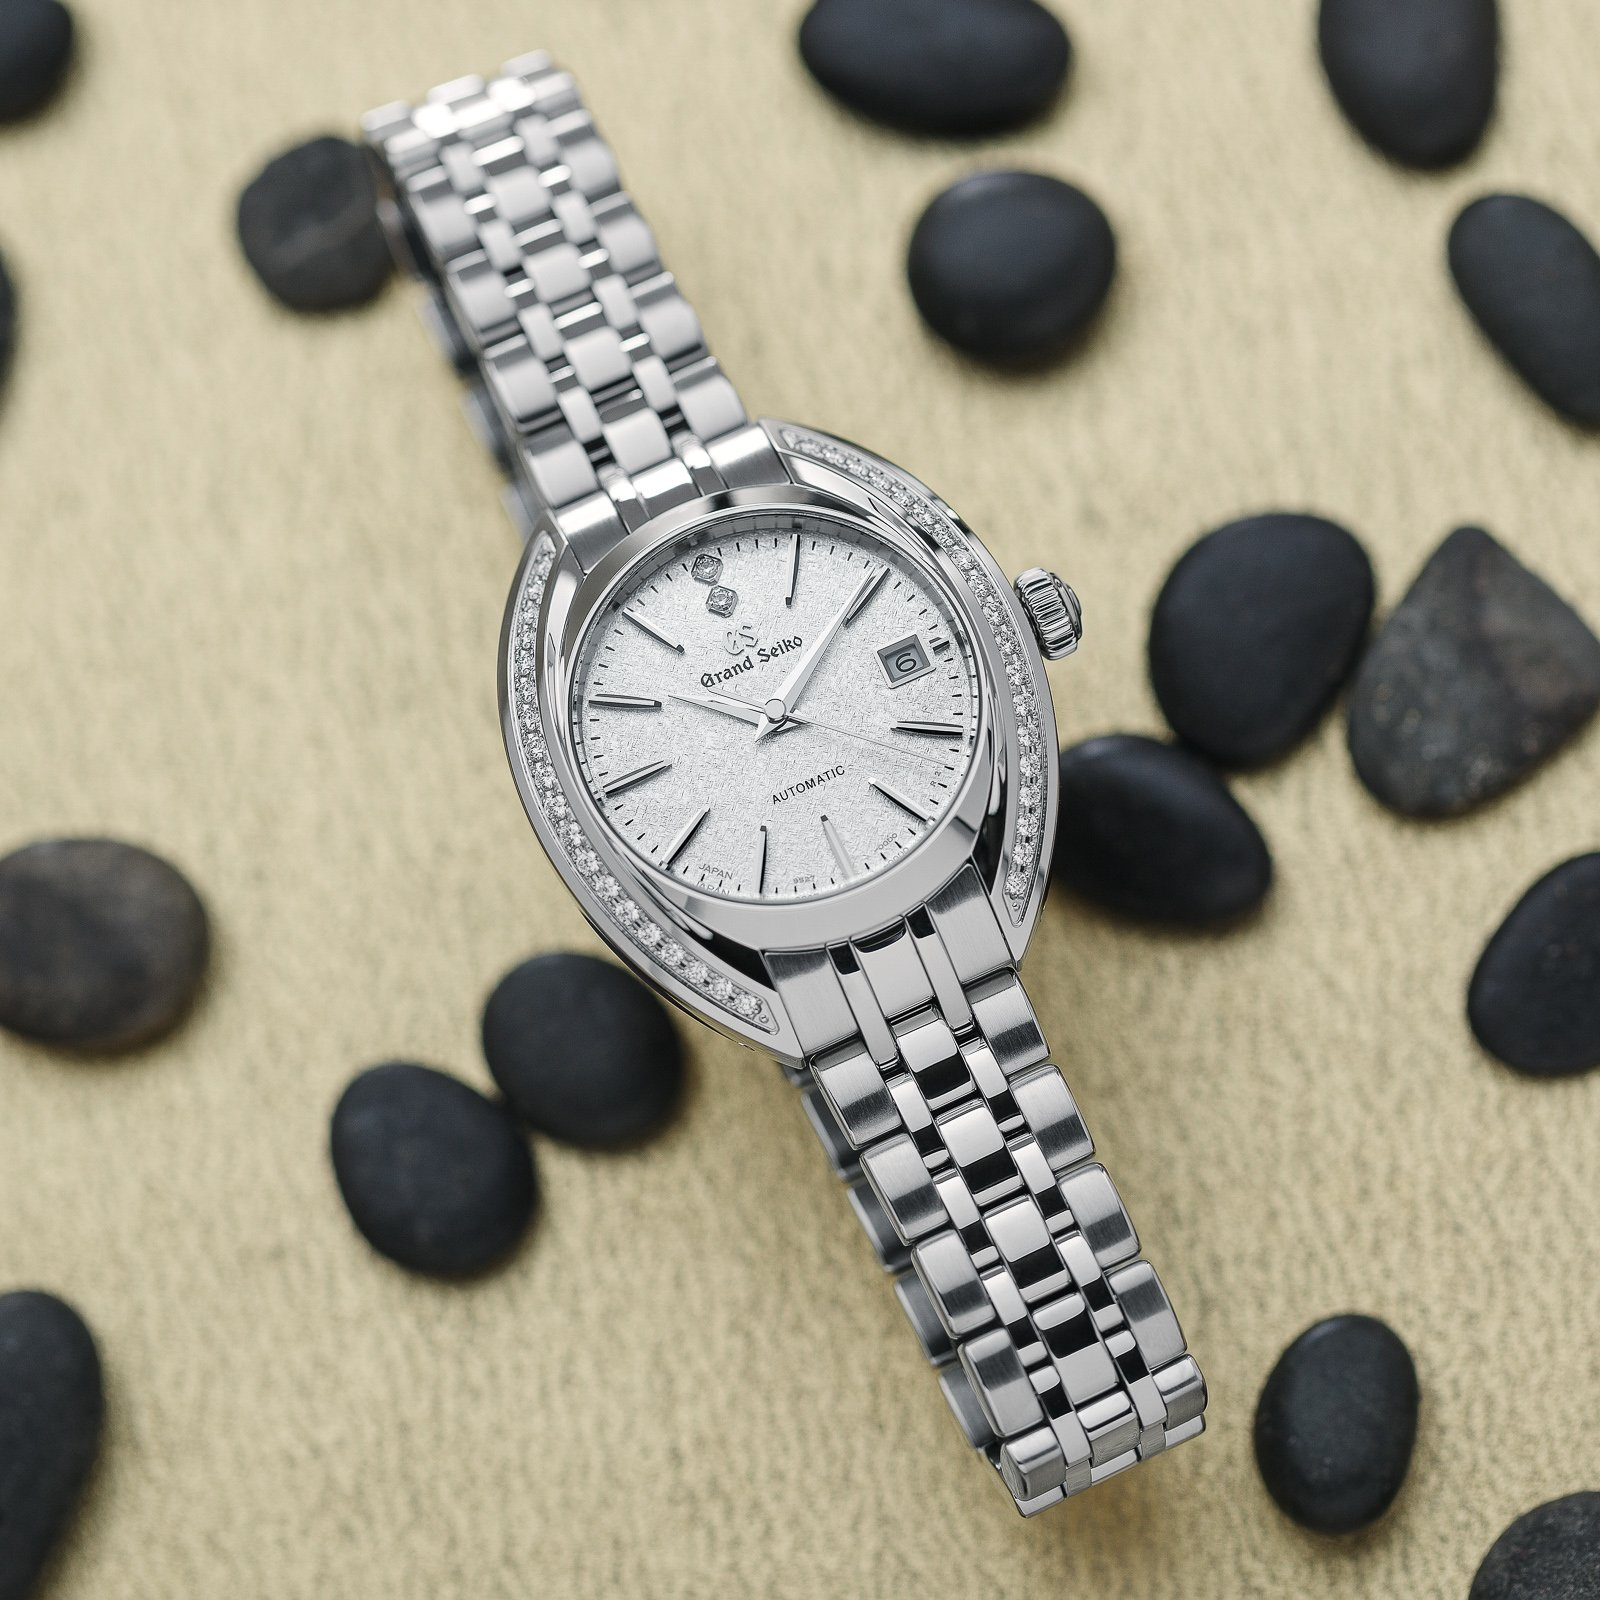 Grand Seiko wristwatch STGK011 - stainless steel case with diamonds and a white textured dial.